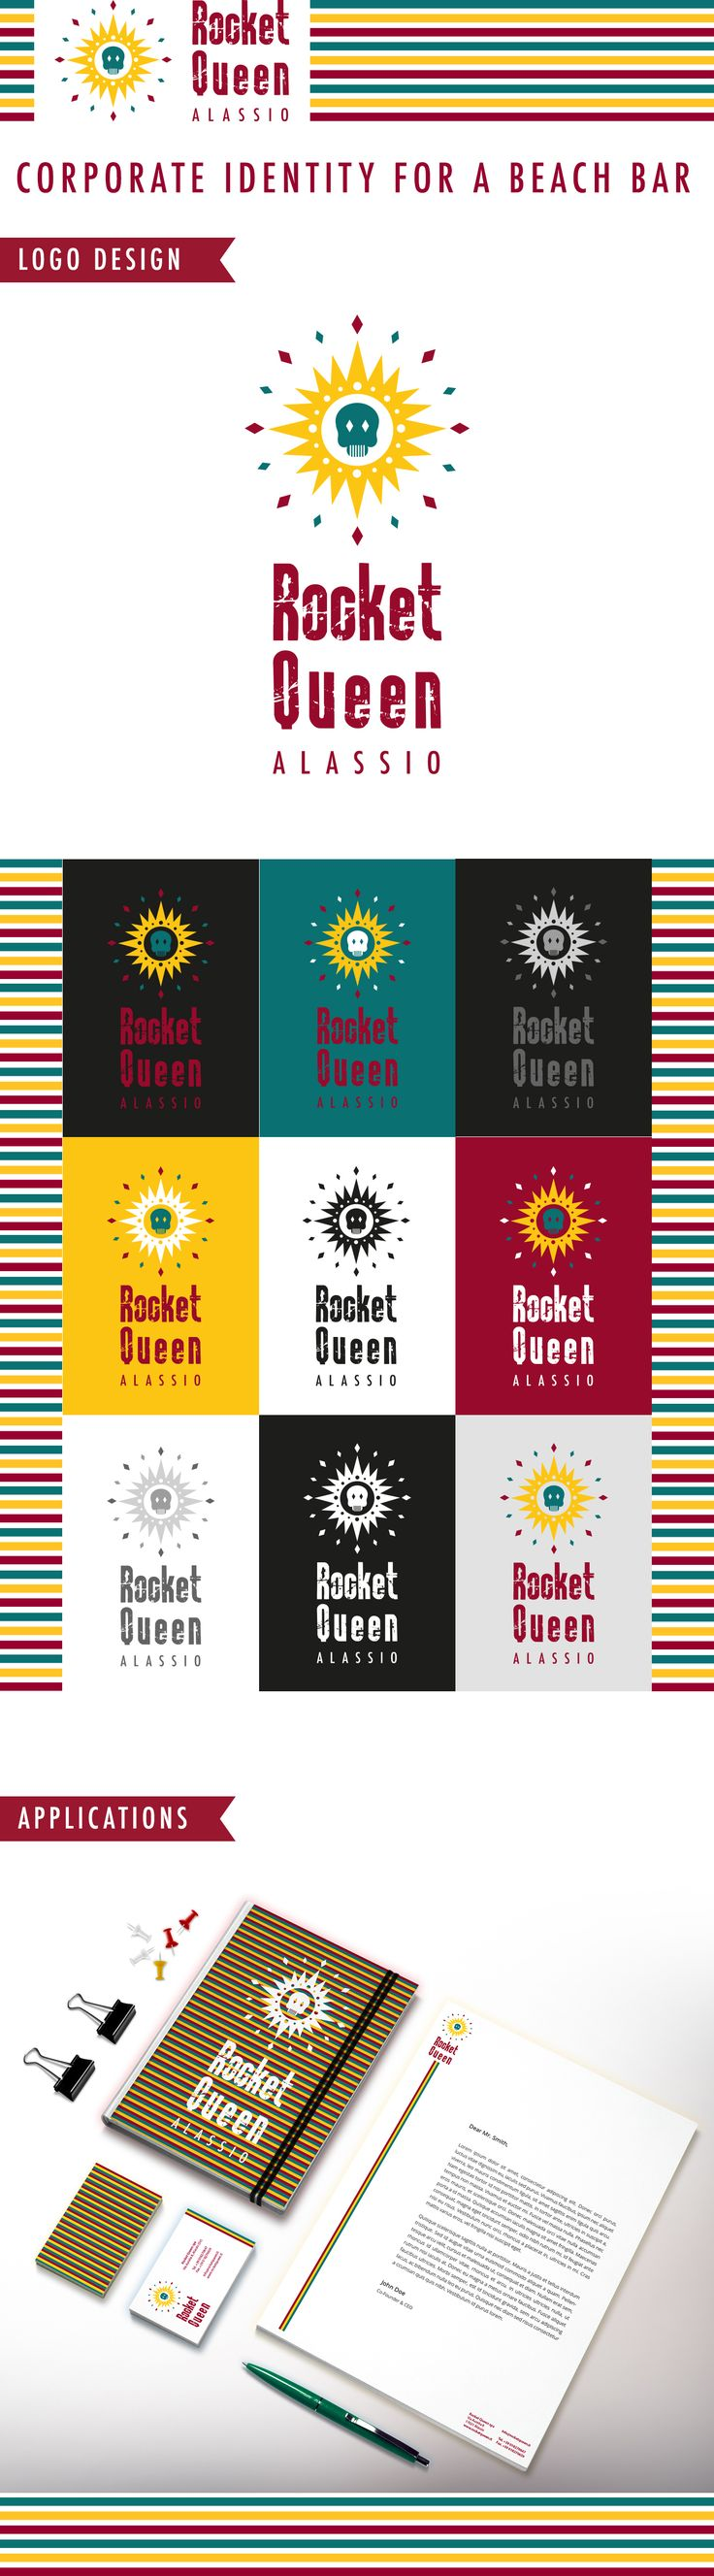 Rocket Queen Beach Bar Corporate Identity #corporate #identity #beach #bar #rocket #queen #flat #skull #fancy #stationary #logo #design #rnr